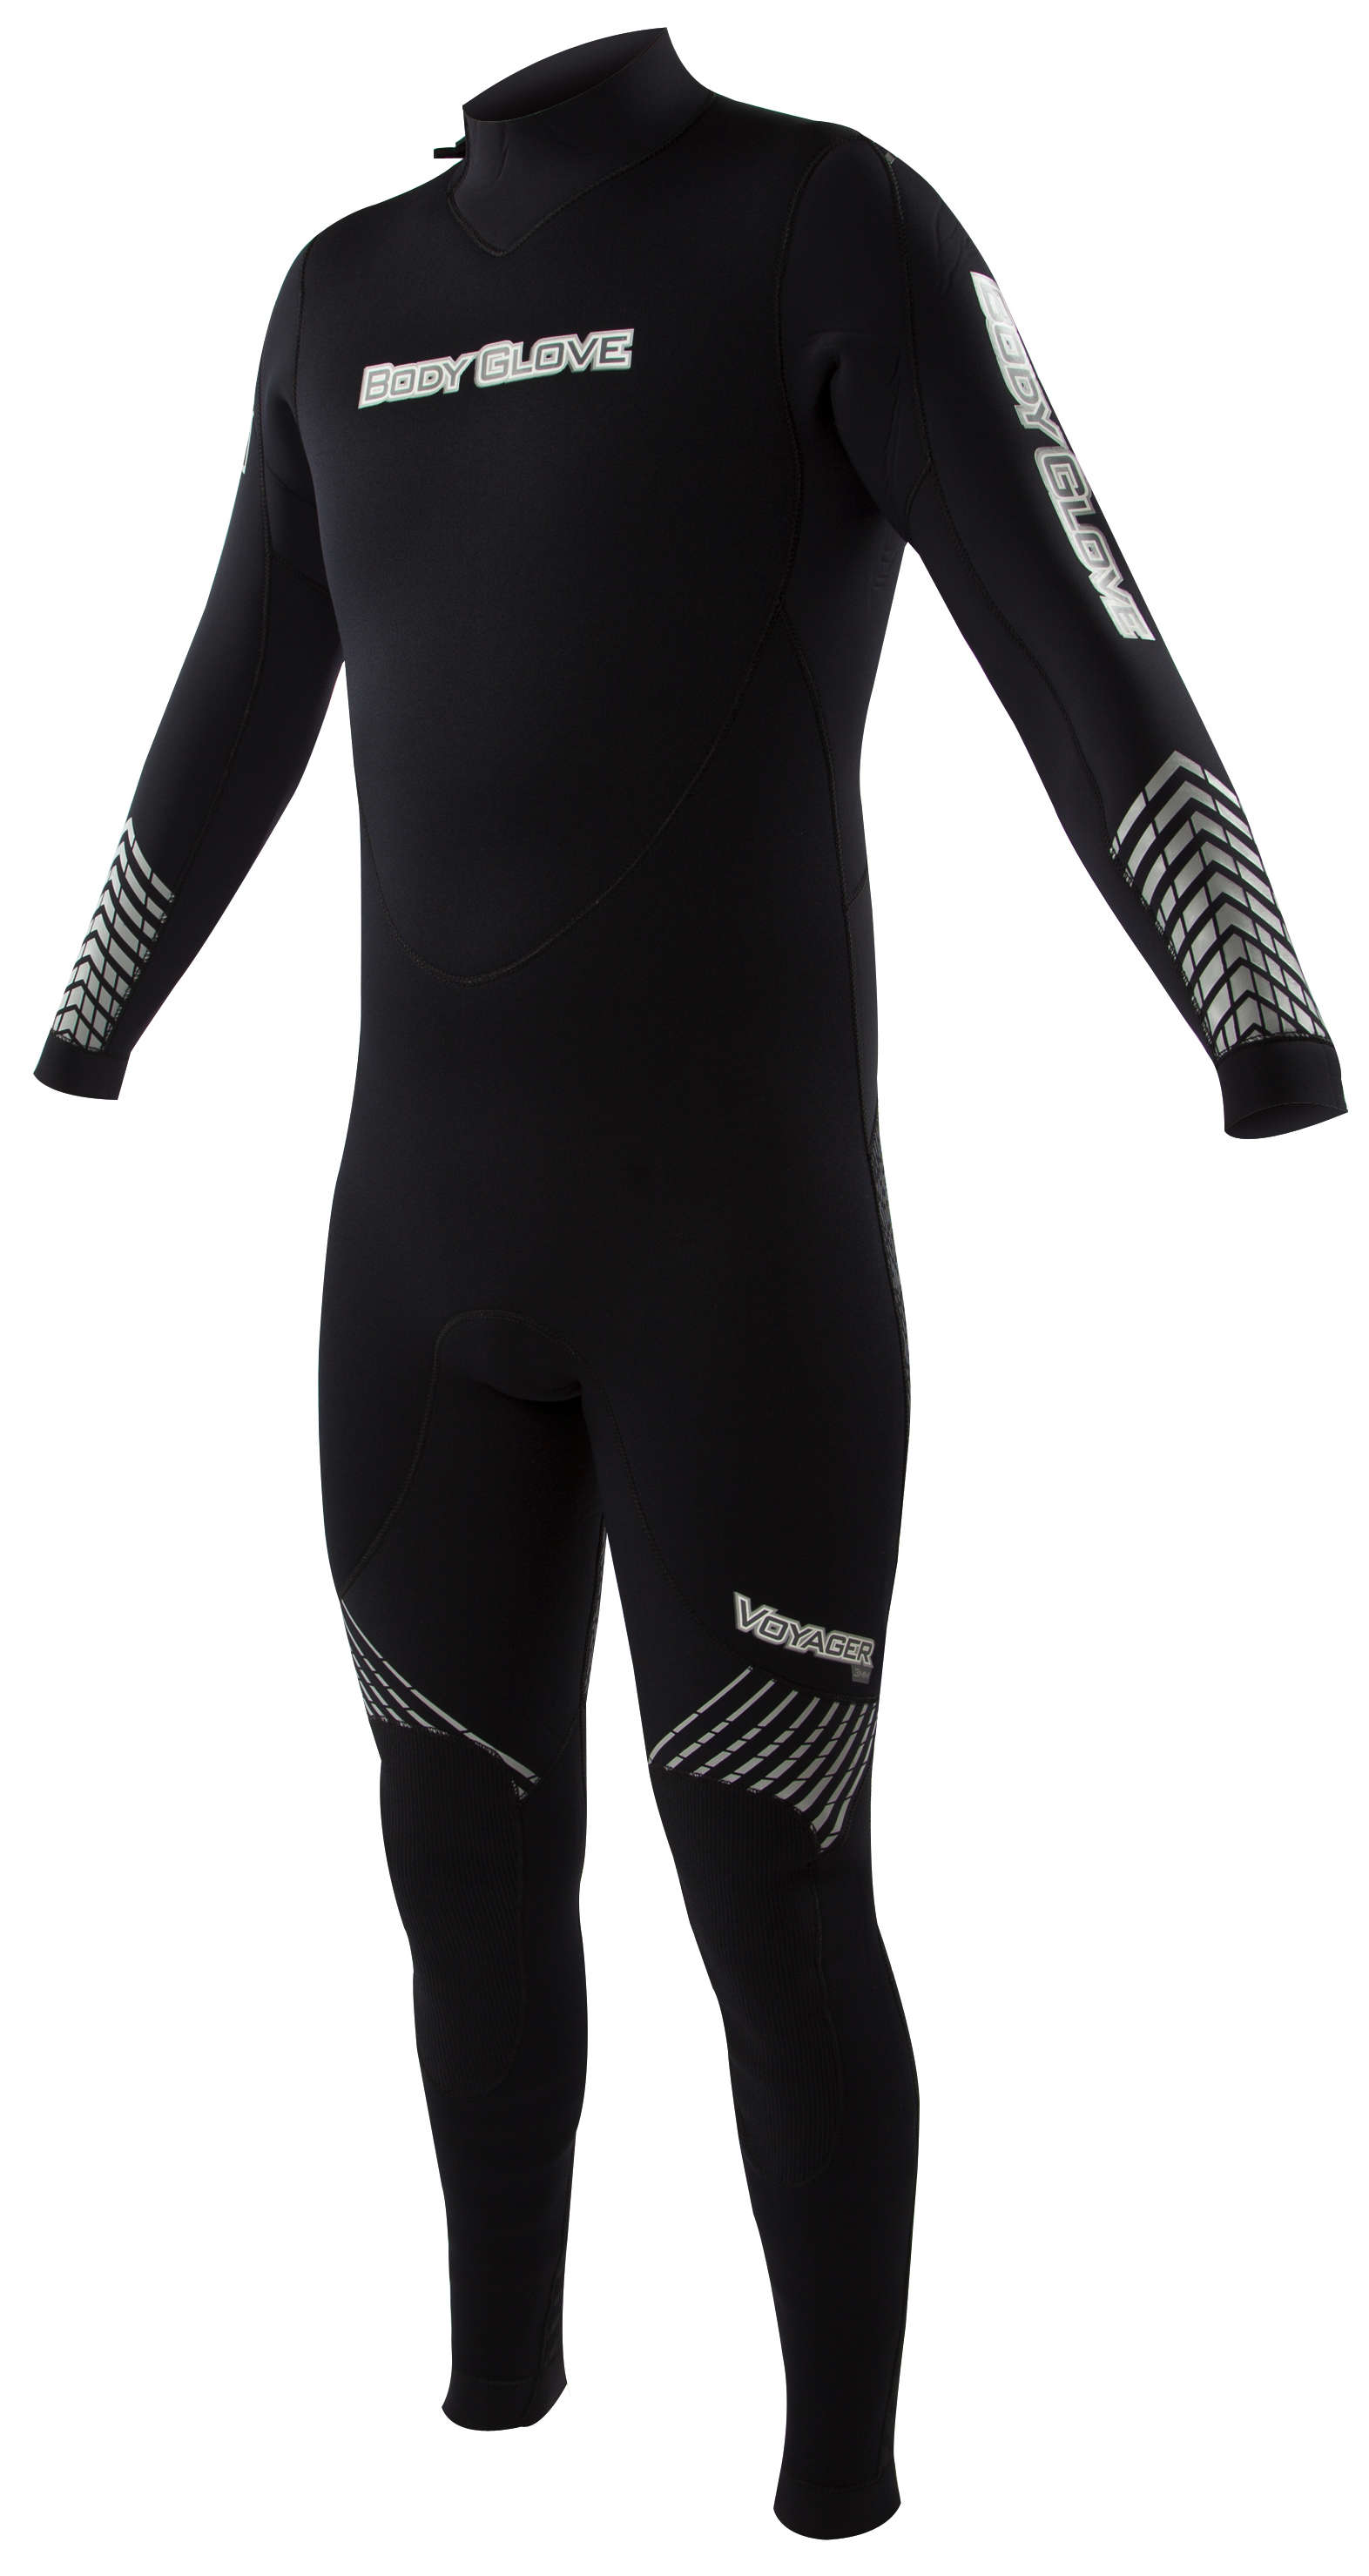 Body Glove Voyager 3mm Men's Backzip Fullsuit -Black